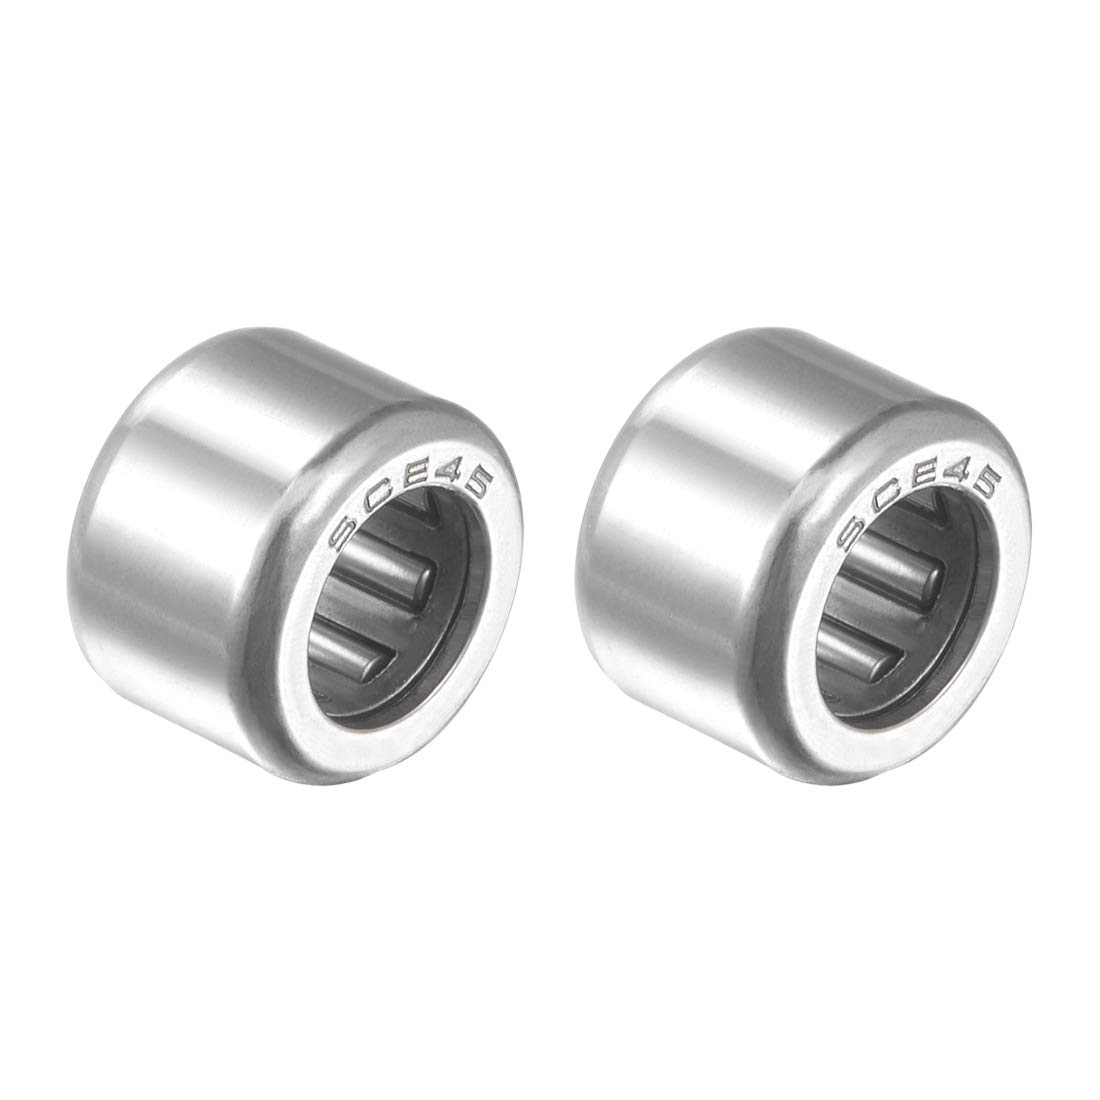 Drawn Cup Open End uxcell SCE45 Needle Roller Bearings 1//4-inch Bore 7//16-inch OD 5//16-inch Width 2500N Static Load 2090N Dynamic Load